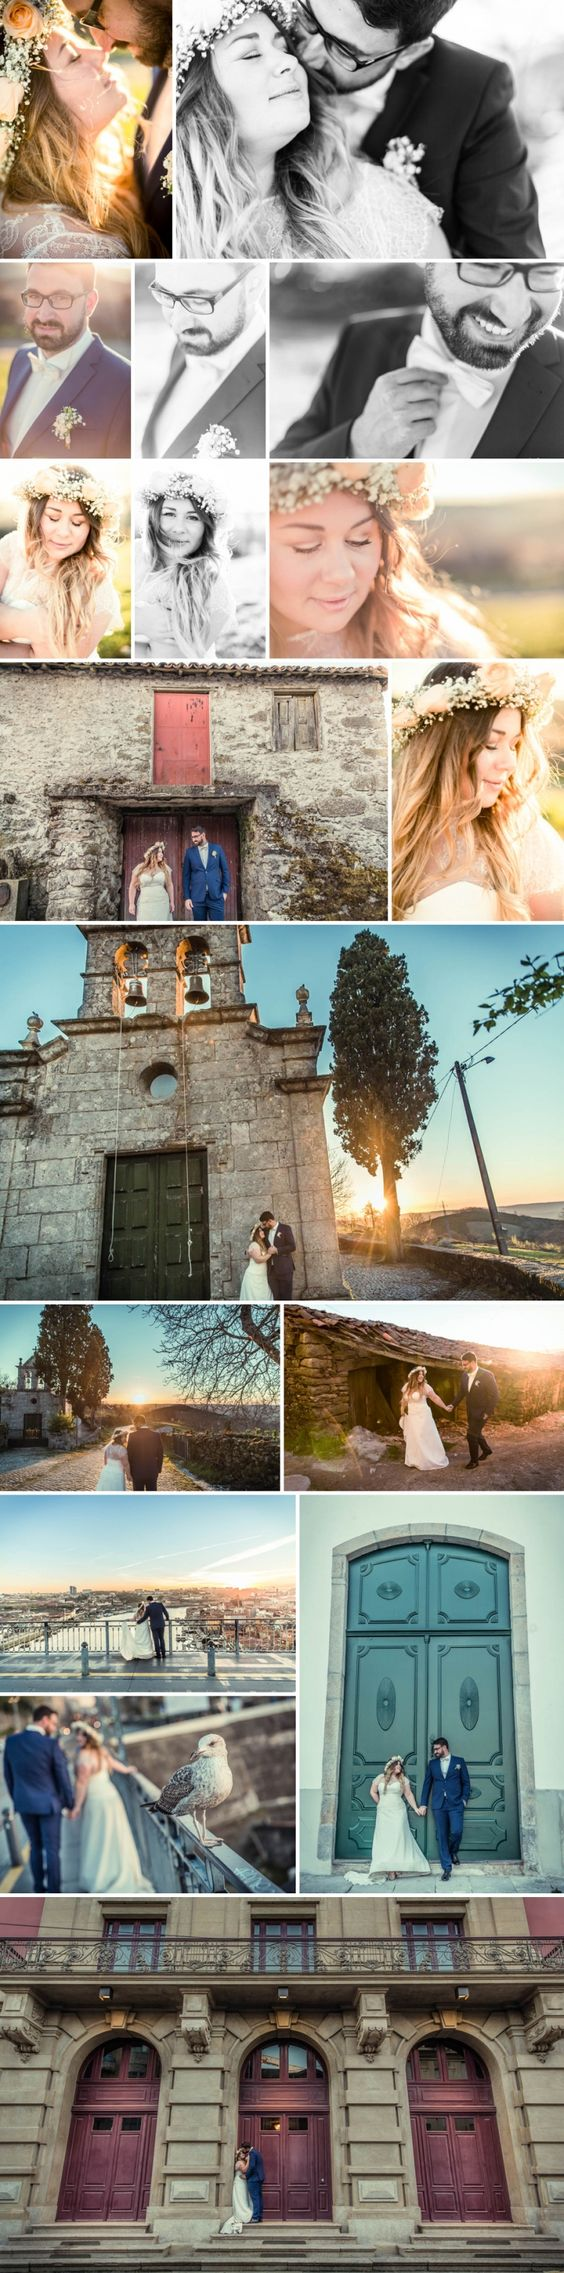 mariage wedding portugal porto